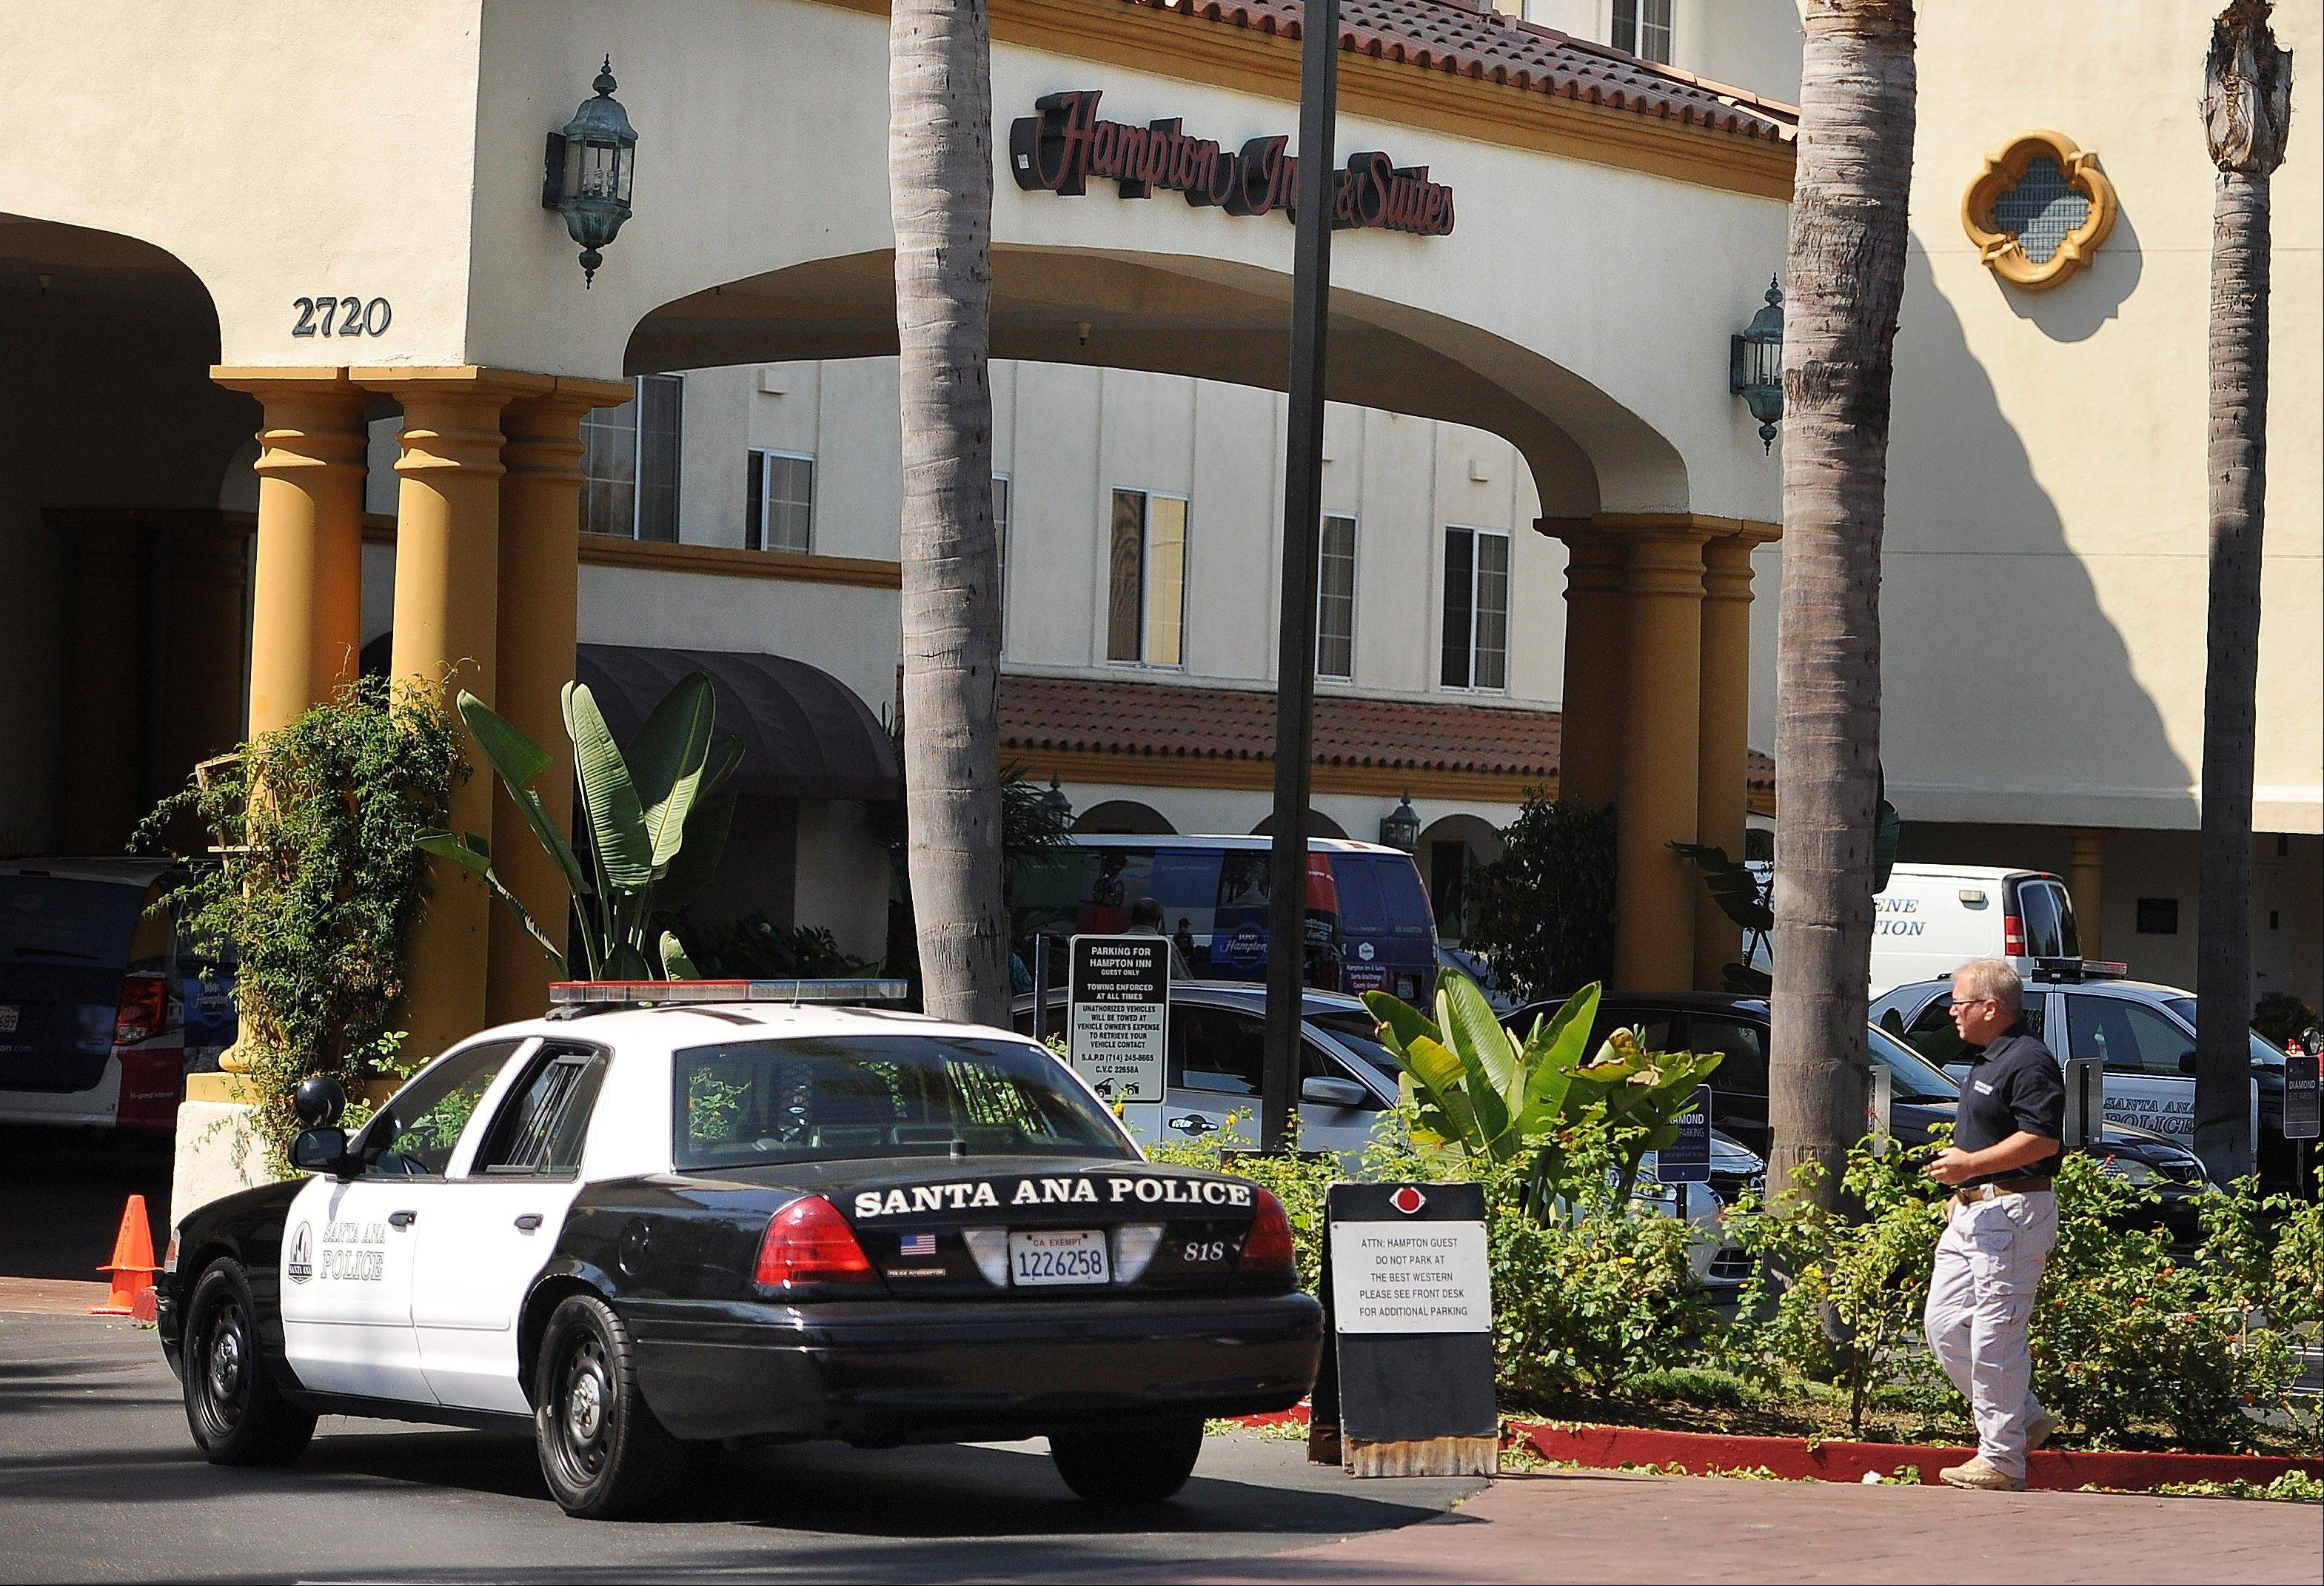 Two children were killed at the Hampton Inn Suites on Grand and Dyer in Santa Ana said Anthony Bertagn, with the Santa Ana Police Department. The mother of the children allegedly tried to commit suicide by ramming her car into a utility box behind a shopping center in Costa Mesa, Calif., Saturday Sept. 14, 2013.